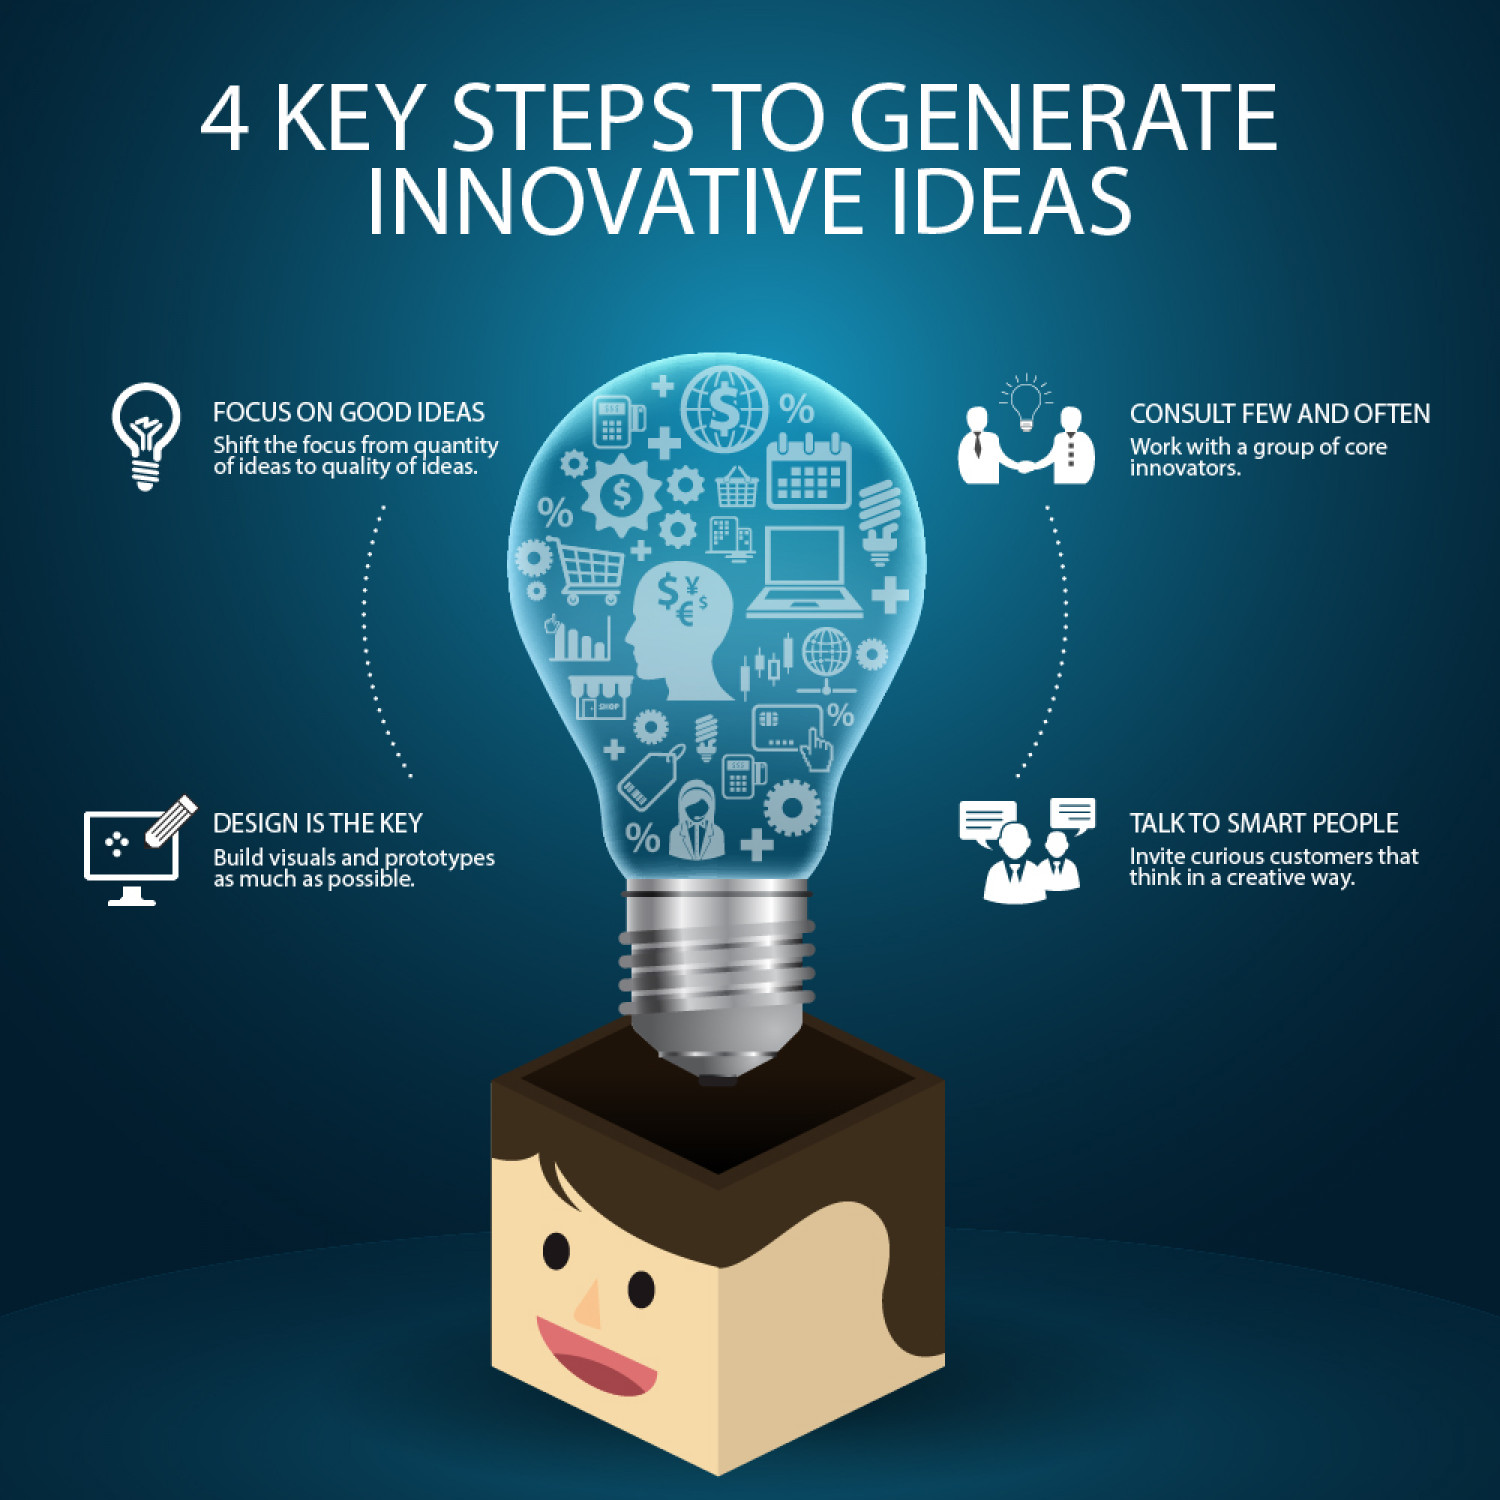 4 Key Steps to Generate Innovative Ideas Infographic